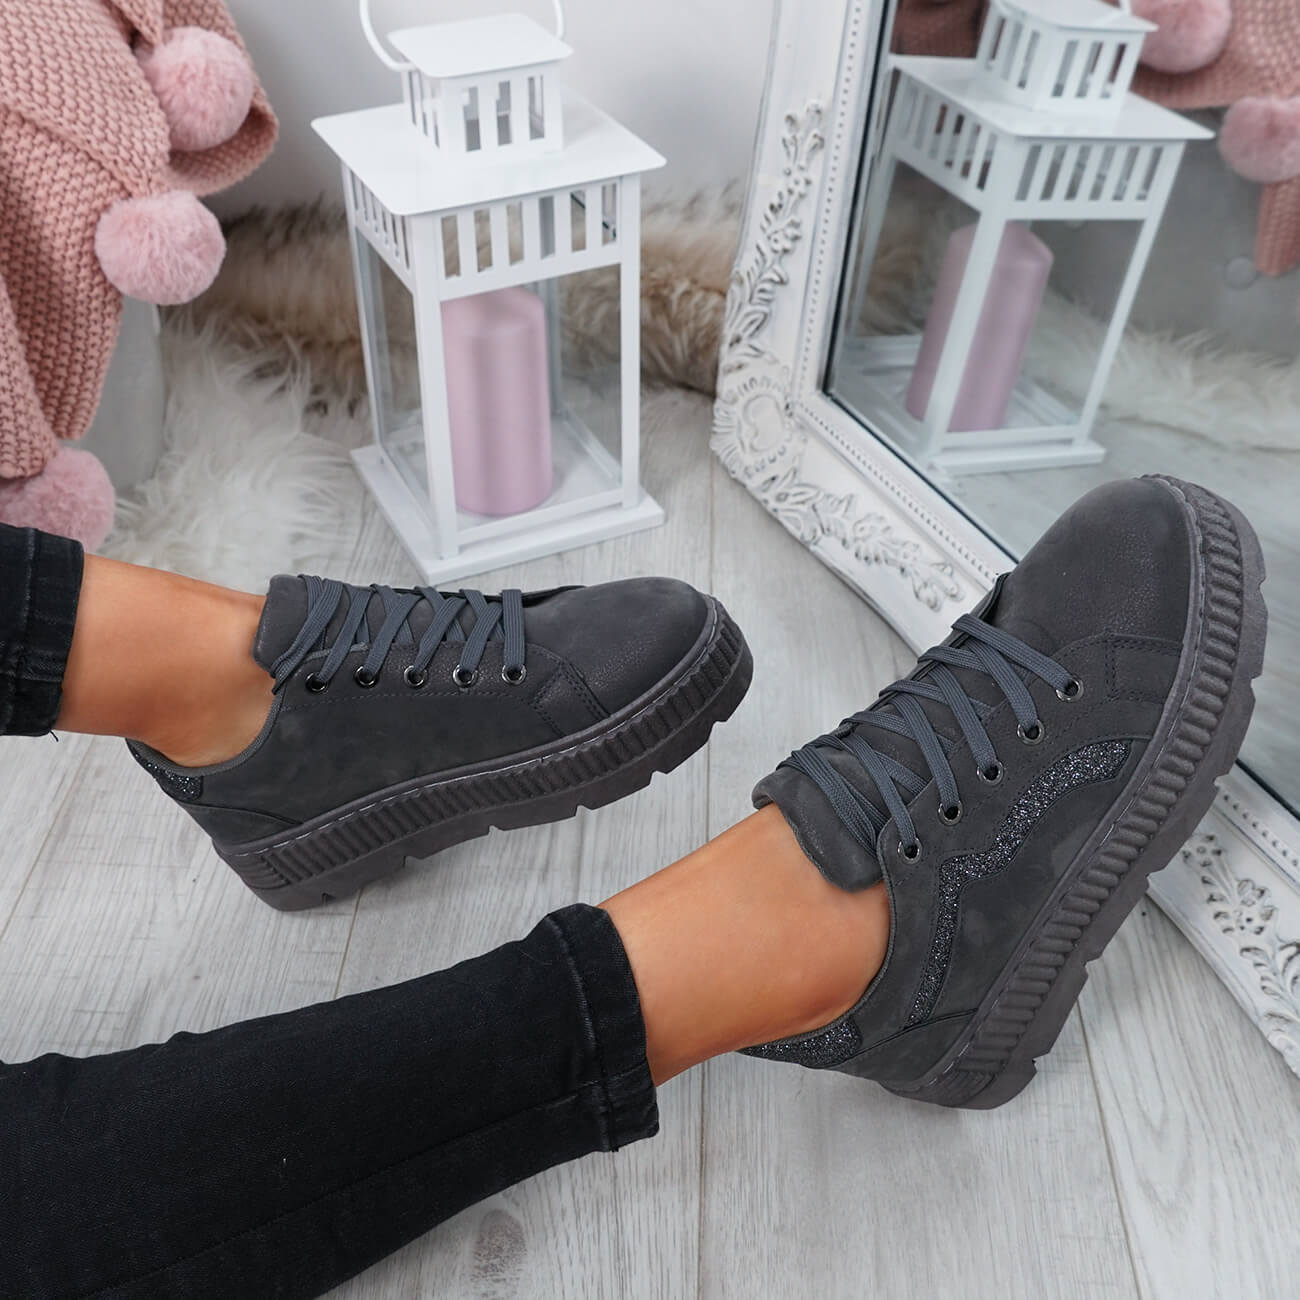 WOMENS-LADIES-LACE-UP-PLATFORM-TRAINERS-PLIMSOLL-SKATE-SNEAKERS-SHOES-SIZE thumbnail 19